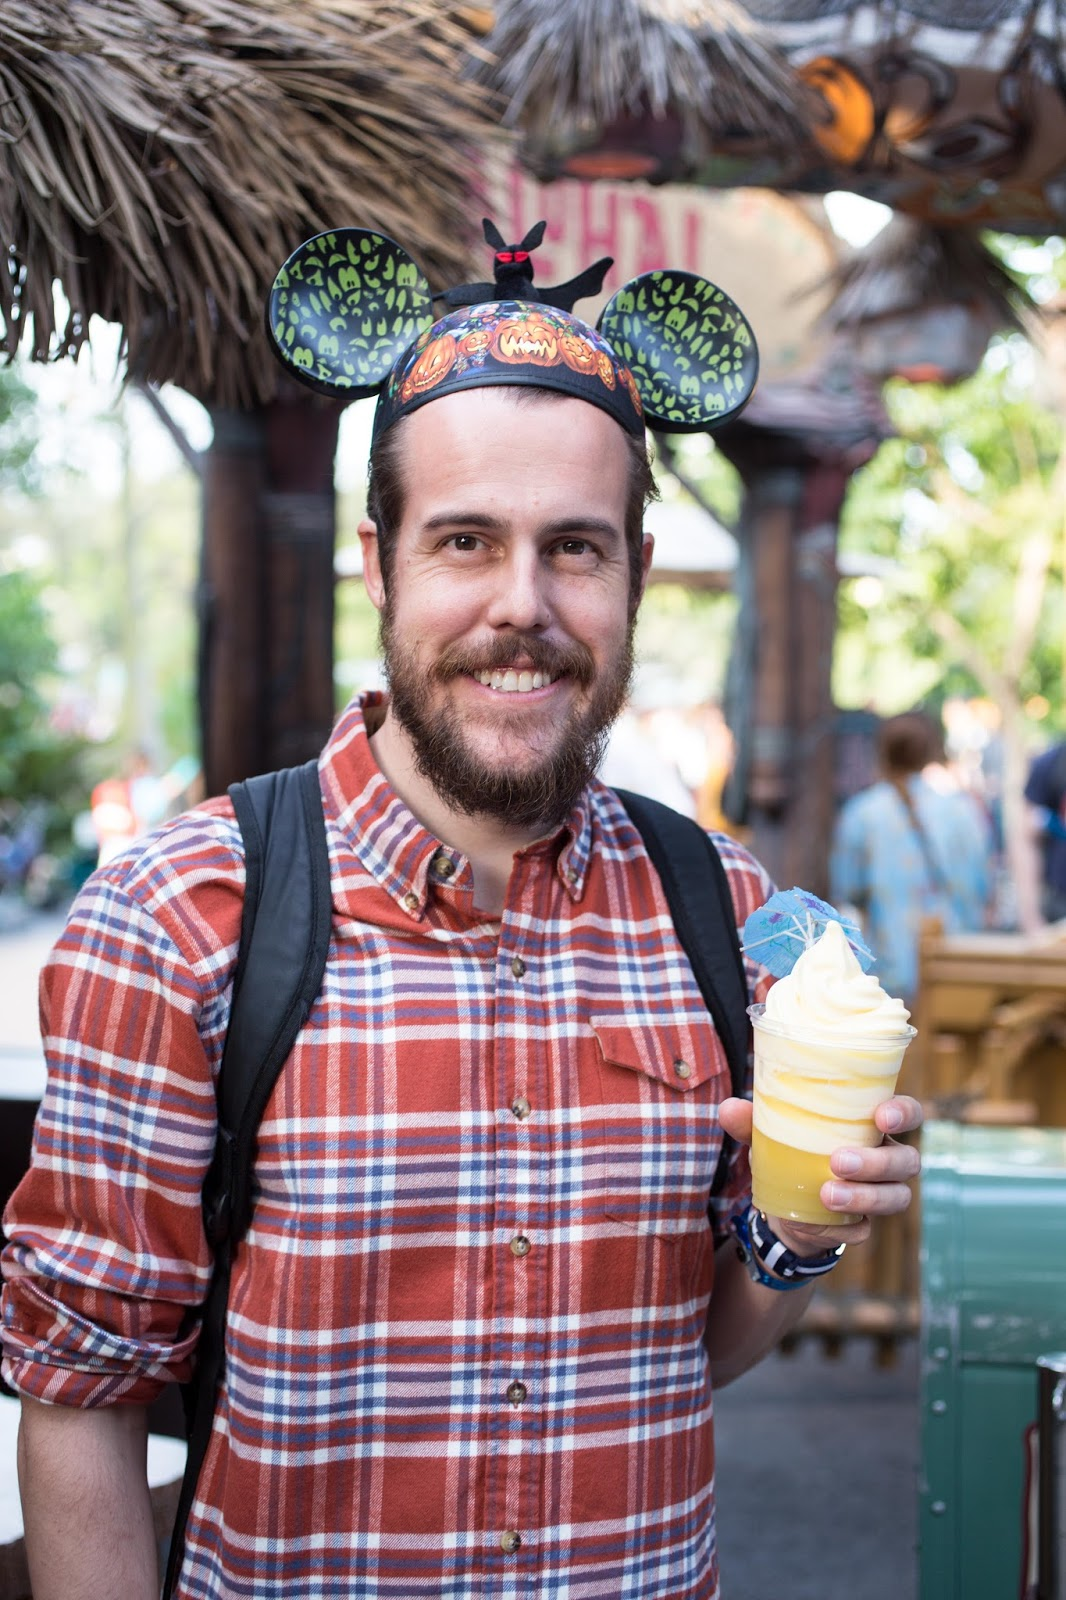 Disneyland Food Guide: Dole Whip